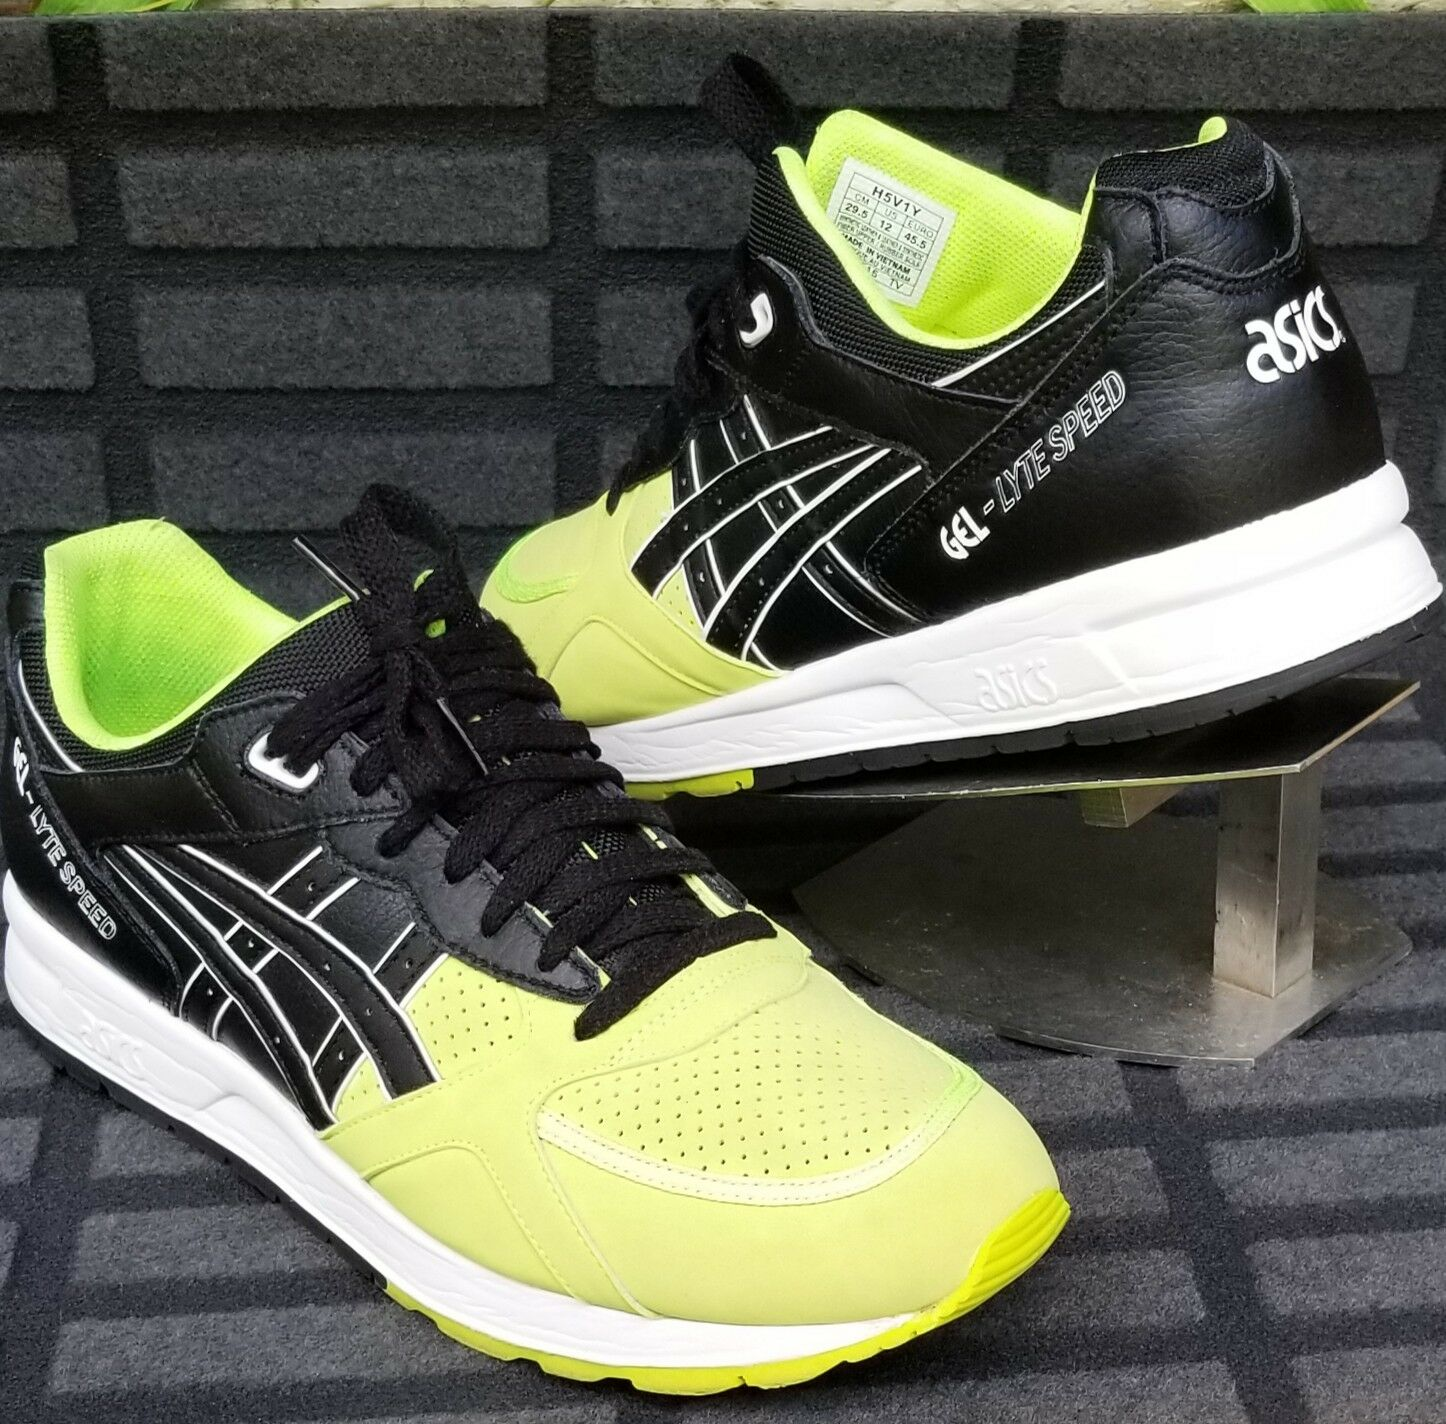 ASICS GEL LYTE SPEED Men's Lime Black Athletic Sneakers shoes Size 12